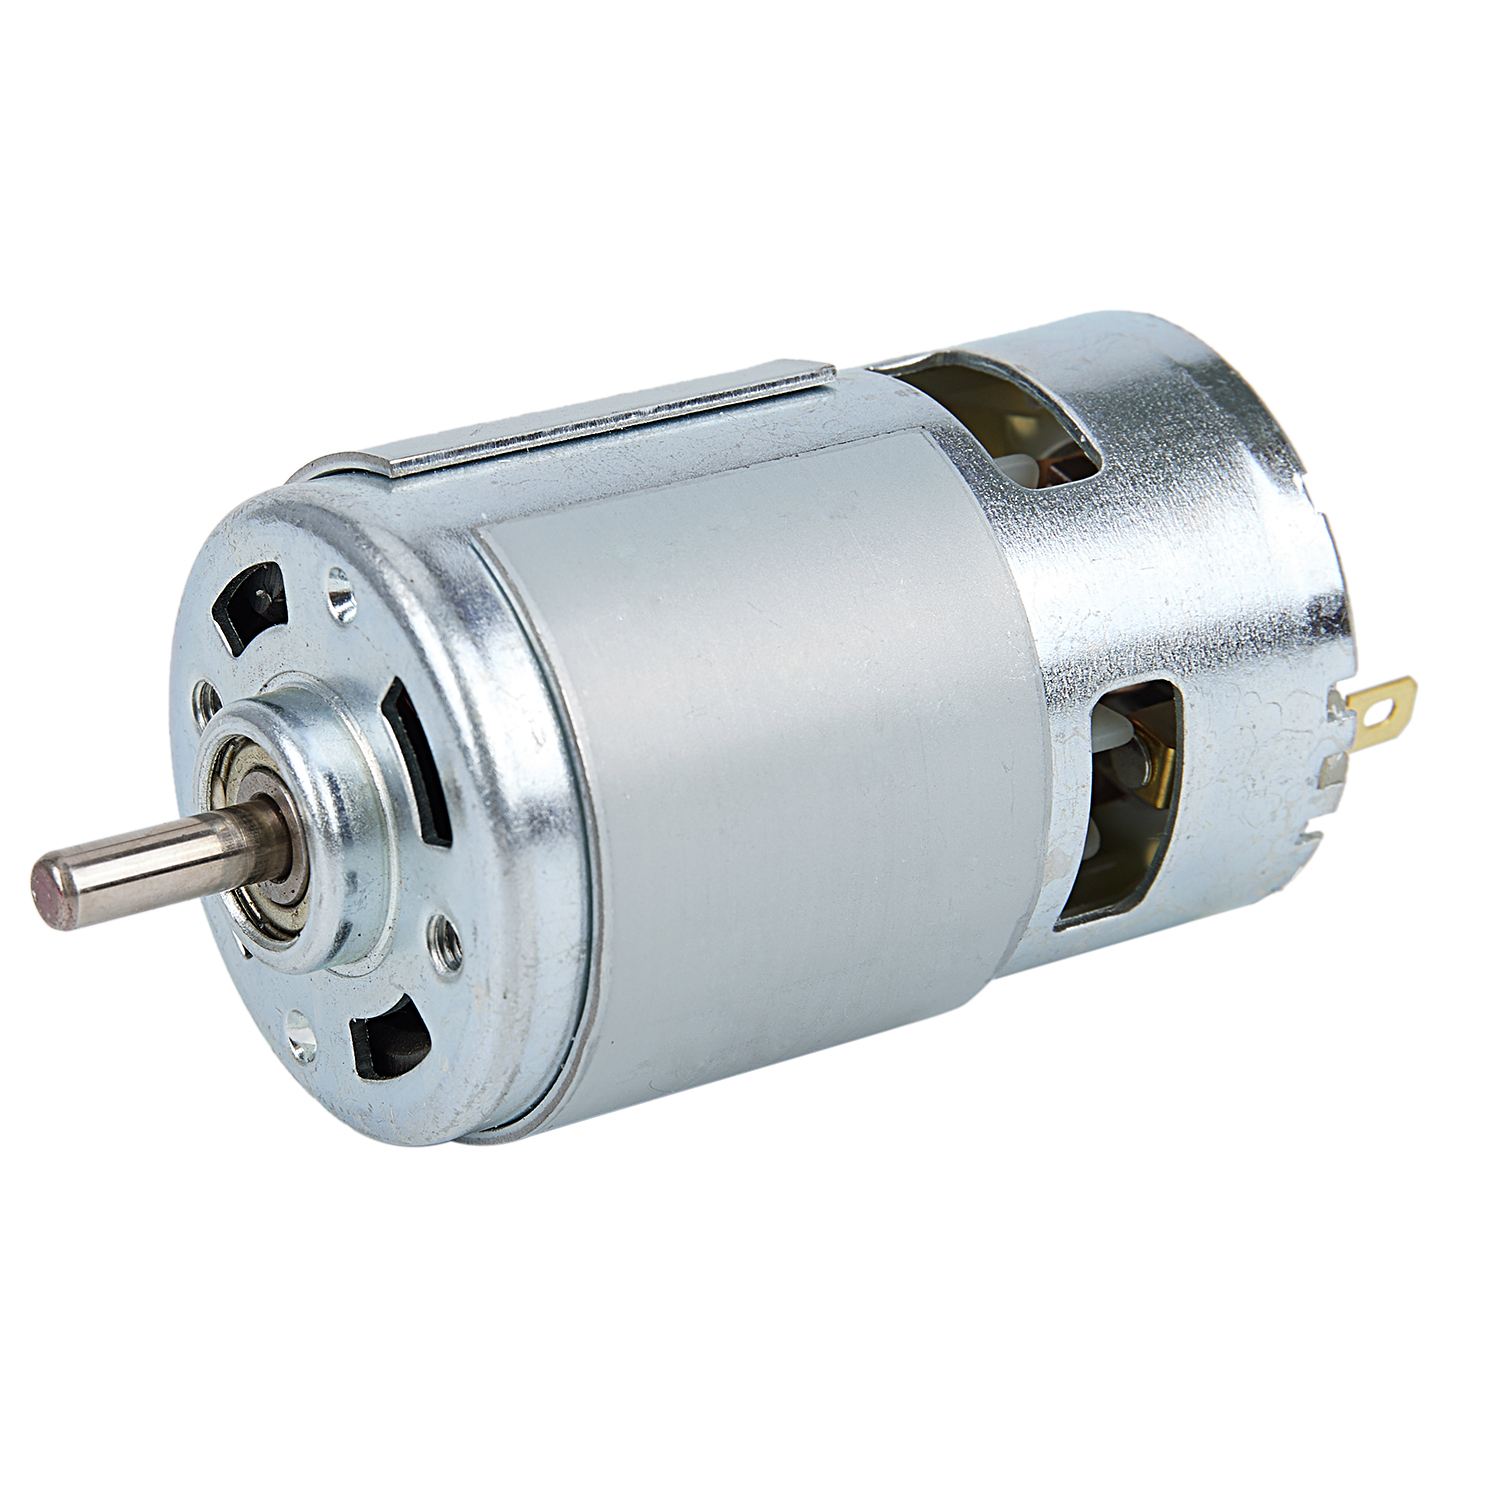 WSFS Hot DC 12V 150W 13000~15000rpm 775 motor High speed Large torque DC motor Electric tool Electric machinery drop shipping WSFS Hot DC 12V 150W 13000~15000rpm 775 motor High speed Large torque DC motor Electric tool Electric machinery drop shipping